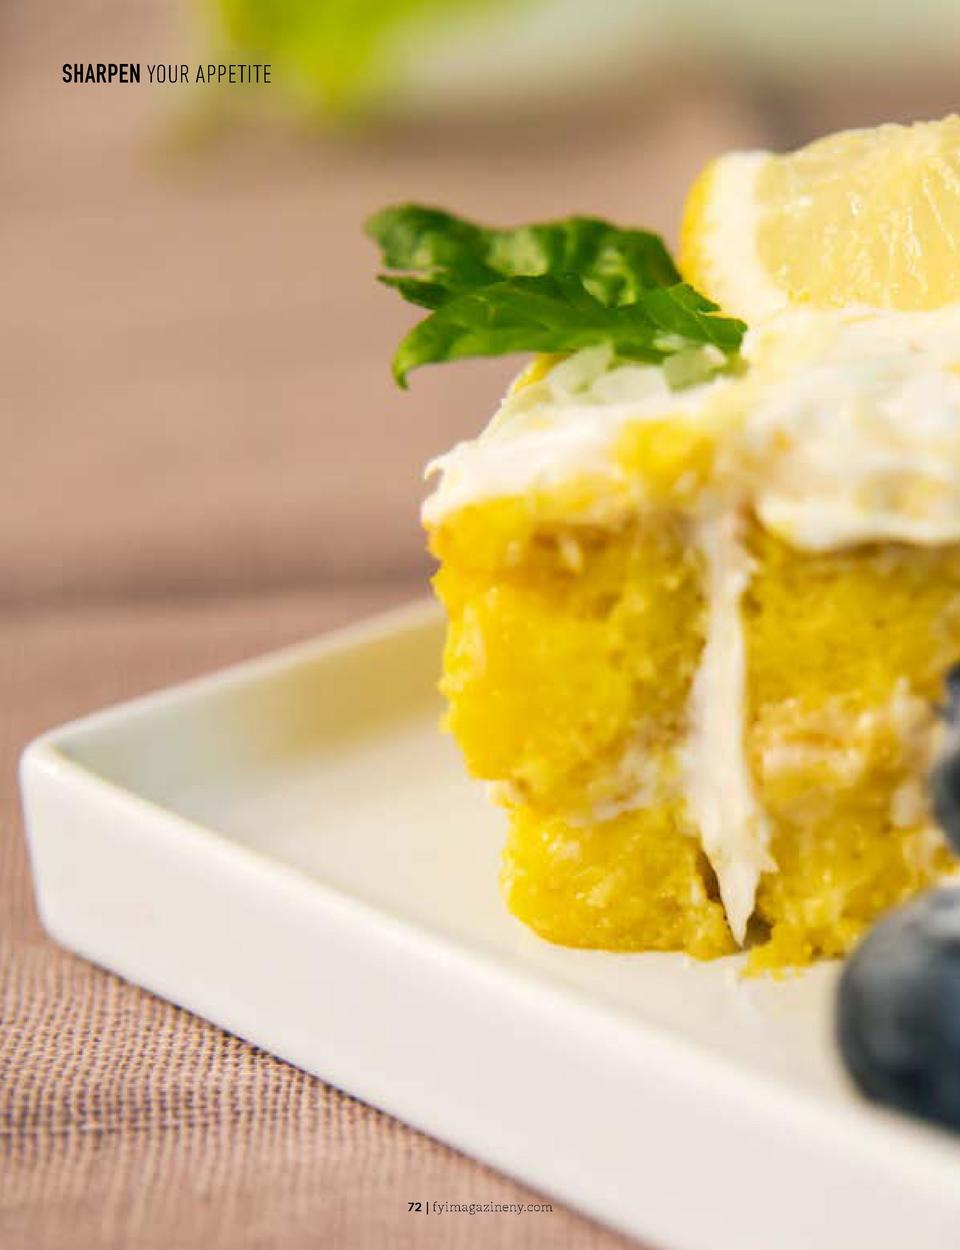 SHARPEN YOUR APPETITE  SHARPEN YOUR APPETITE  Lemon Coconut Poke Cake Poke cakes are simple and fun to make. This is one r...